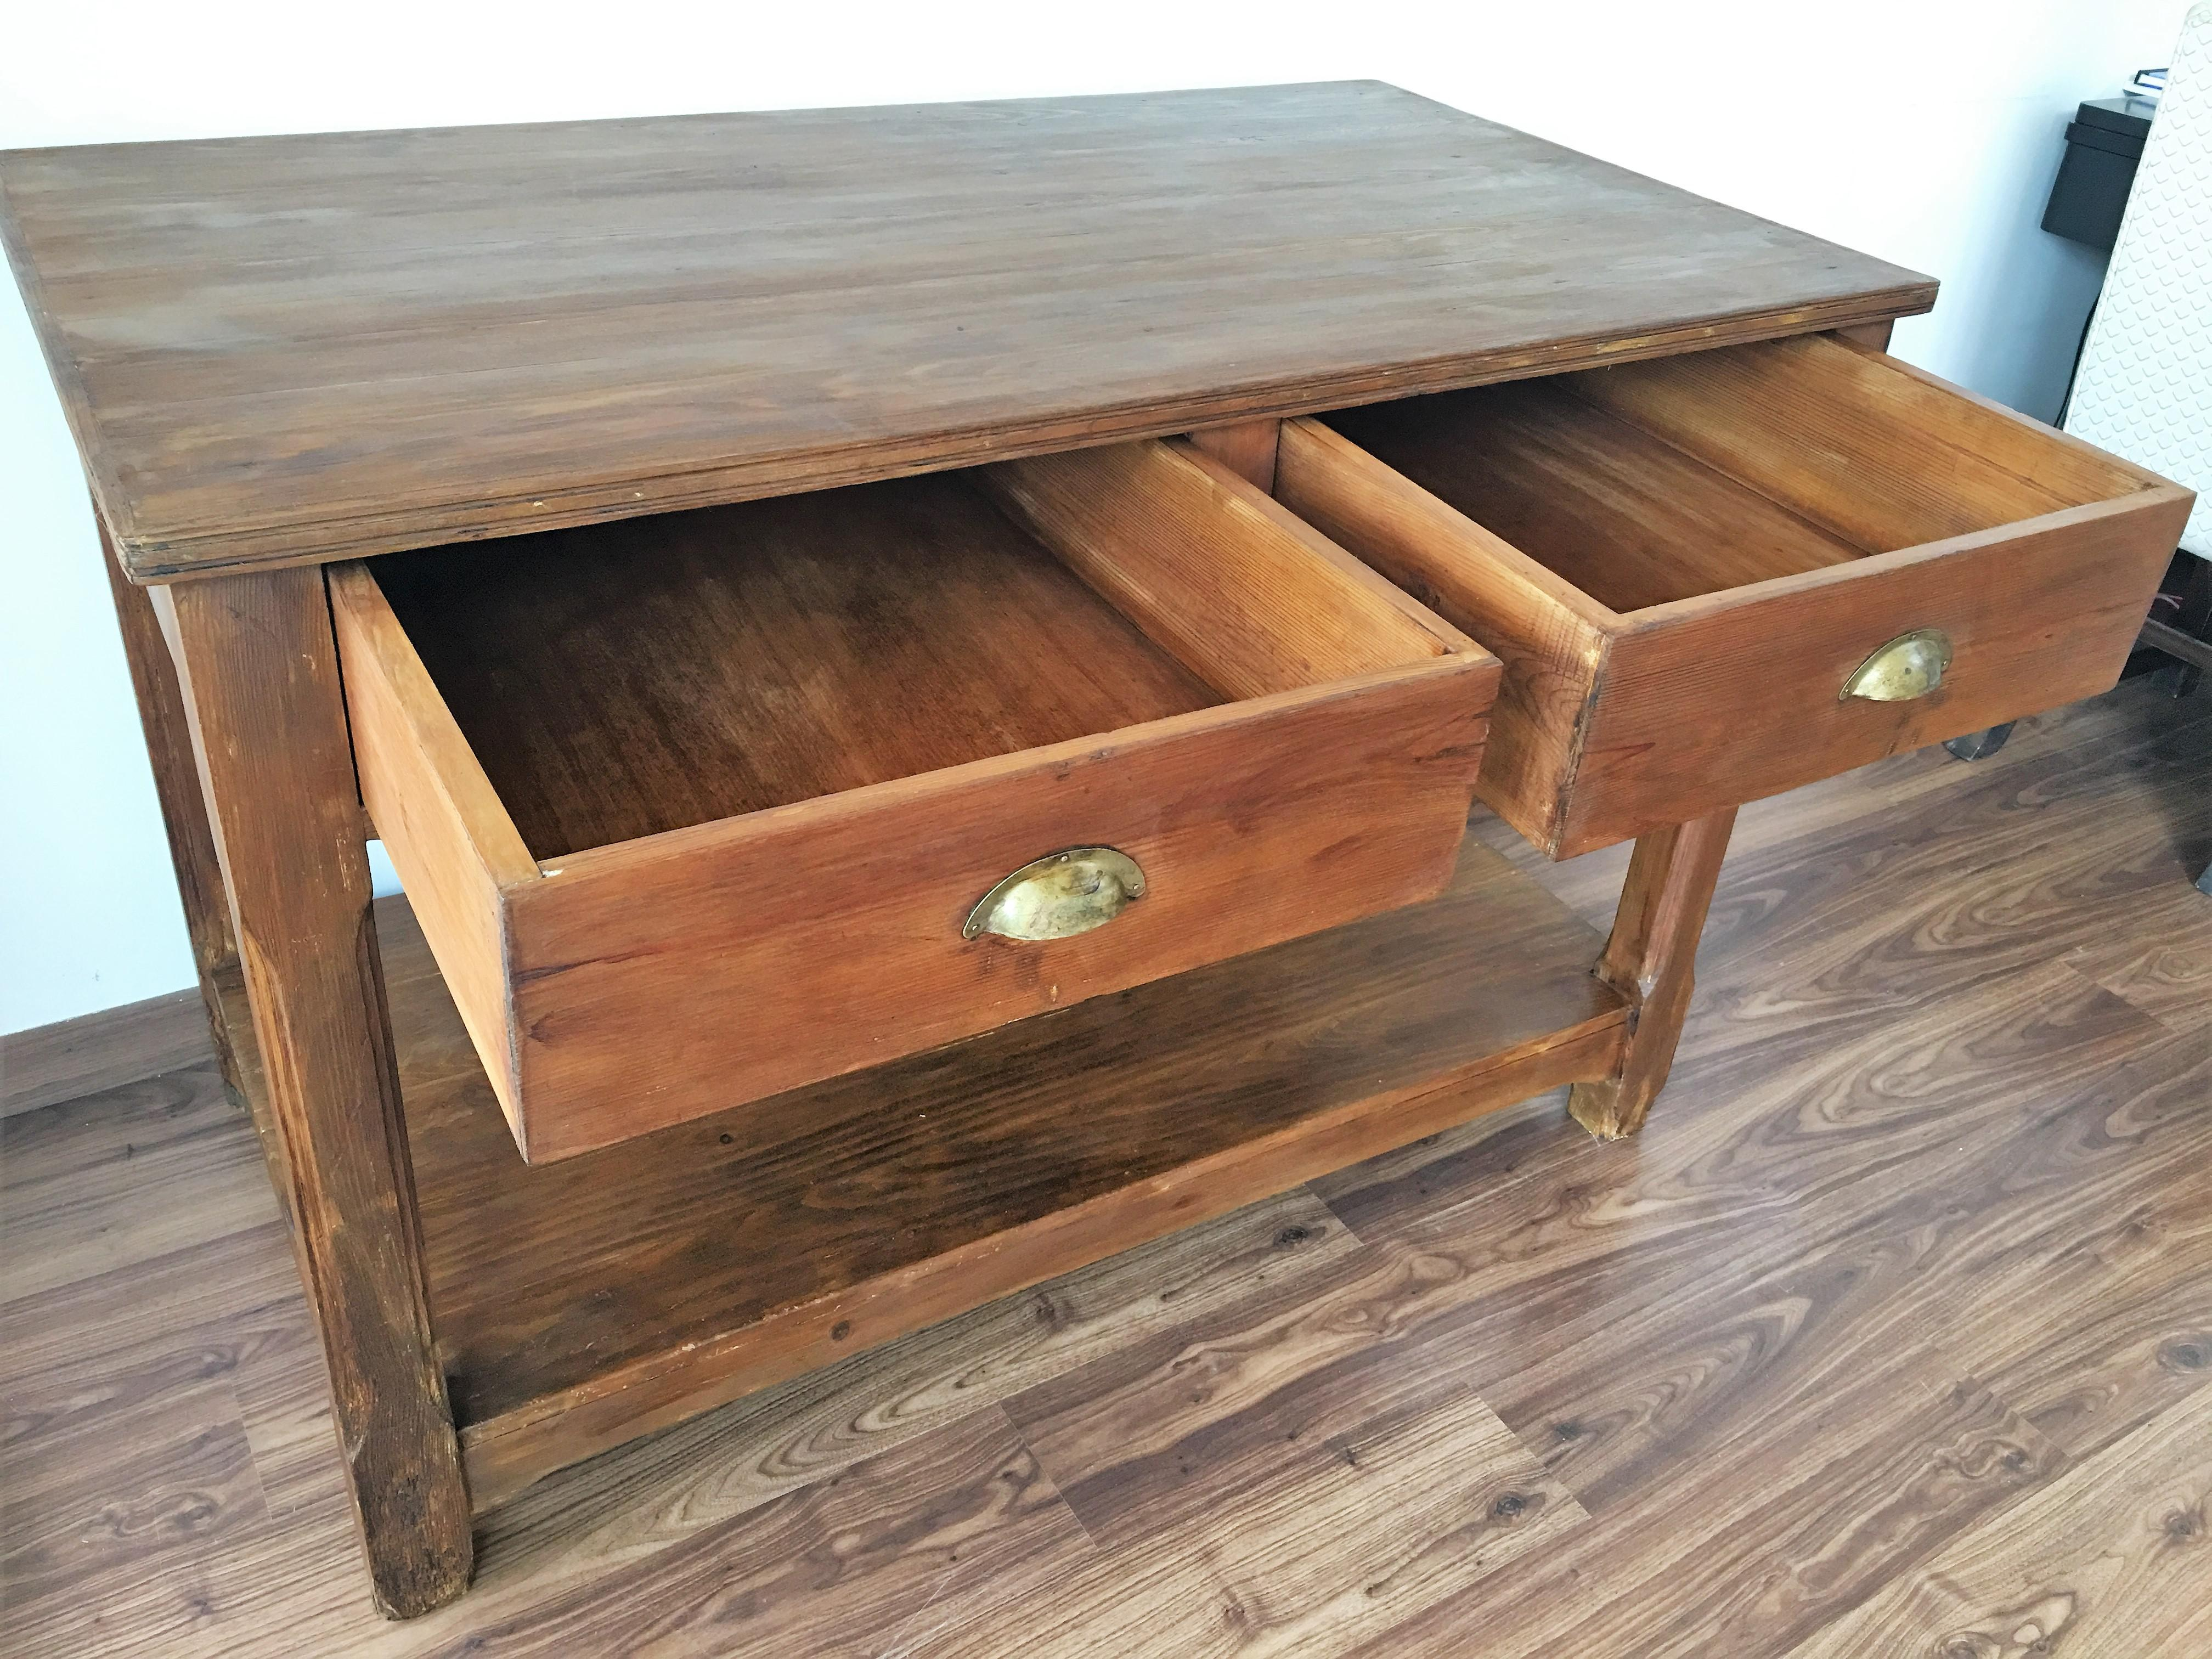 Beau Pine 20th Century Pine Kitchen Table, Country Farm Table With Two Drawers  For Sale